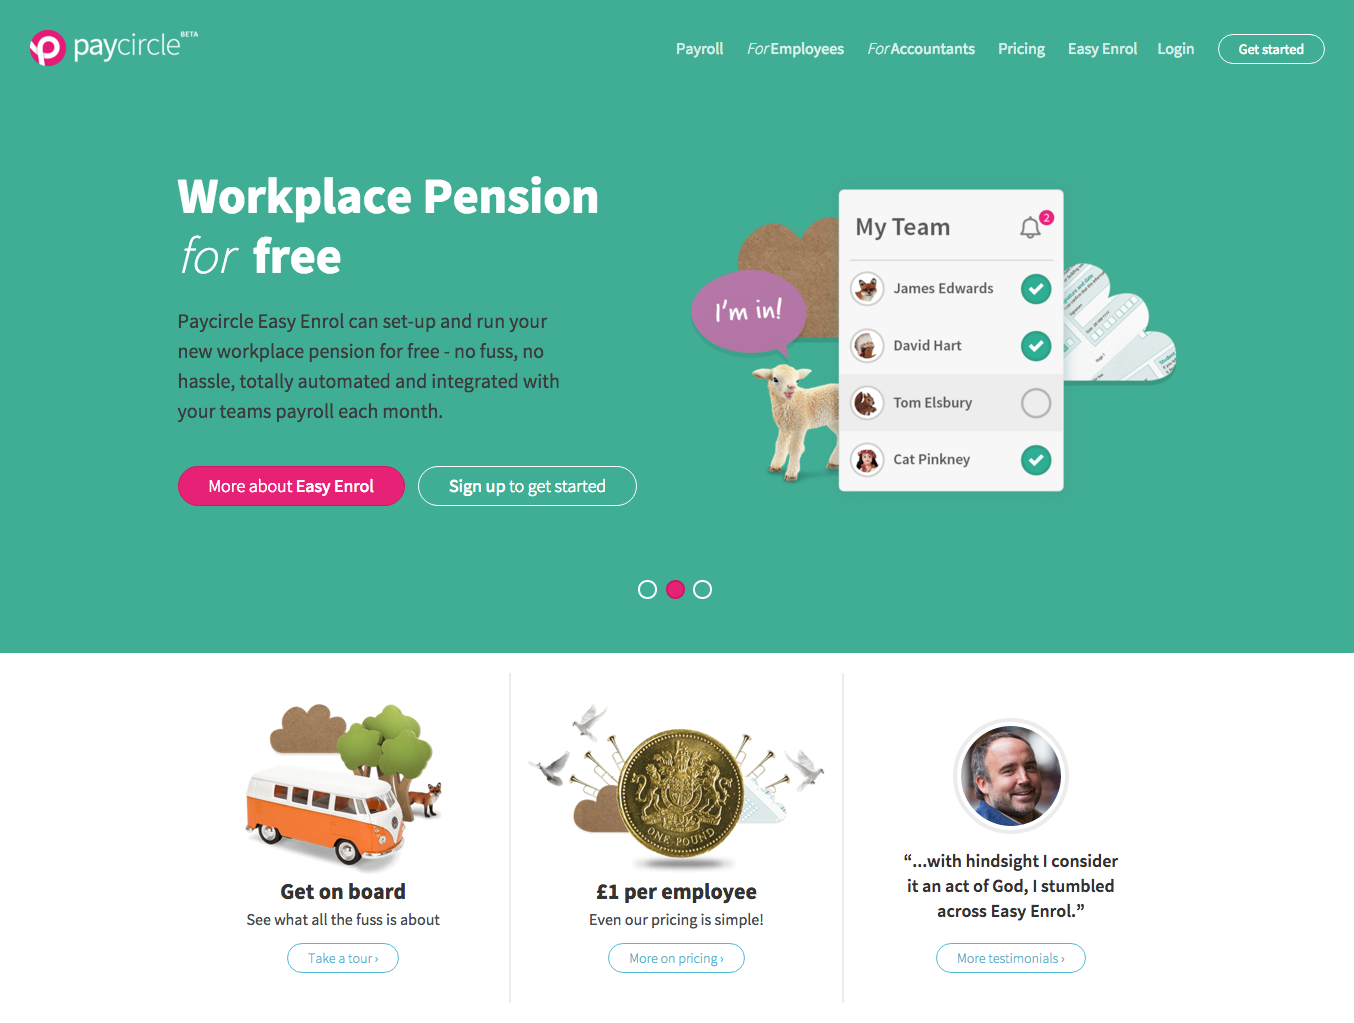 Paycircle Homepage Pension Messaging